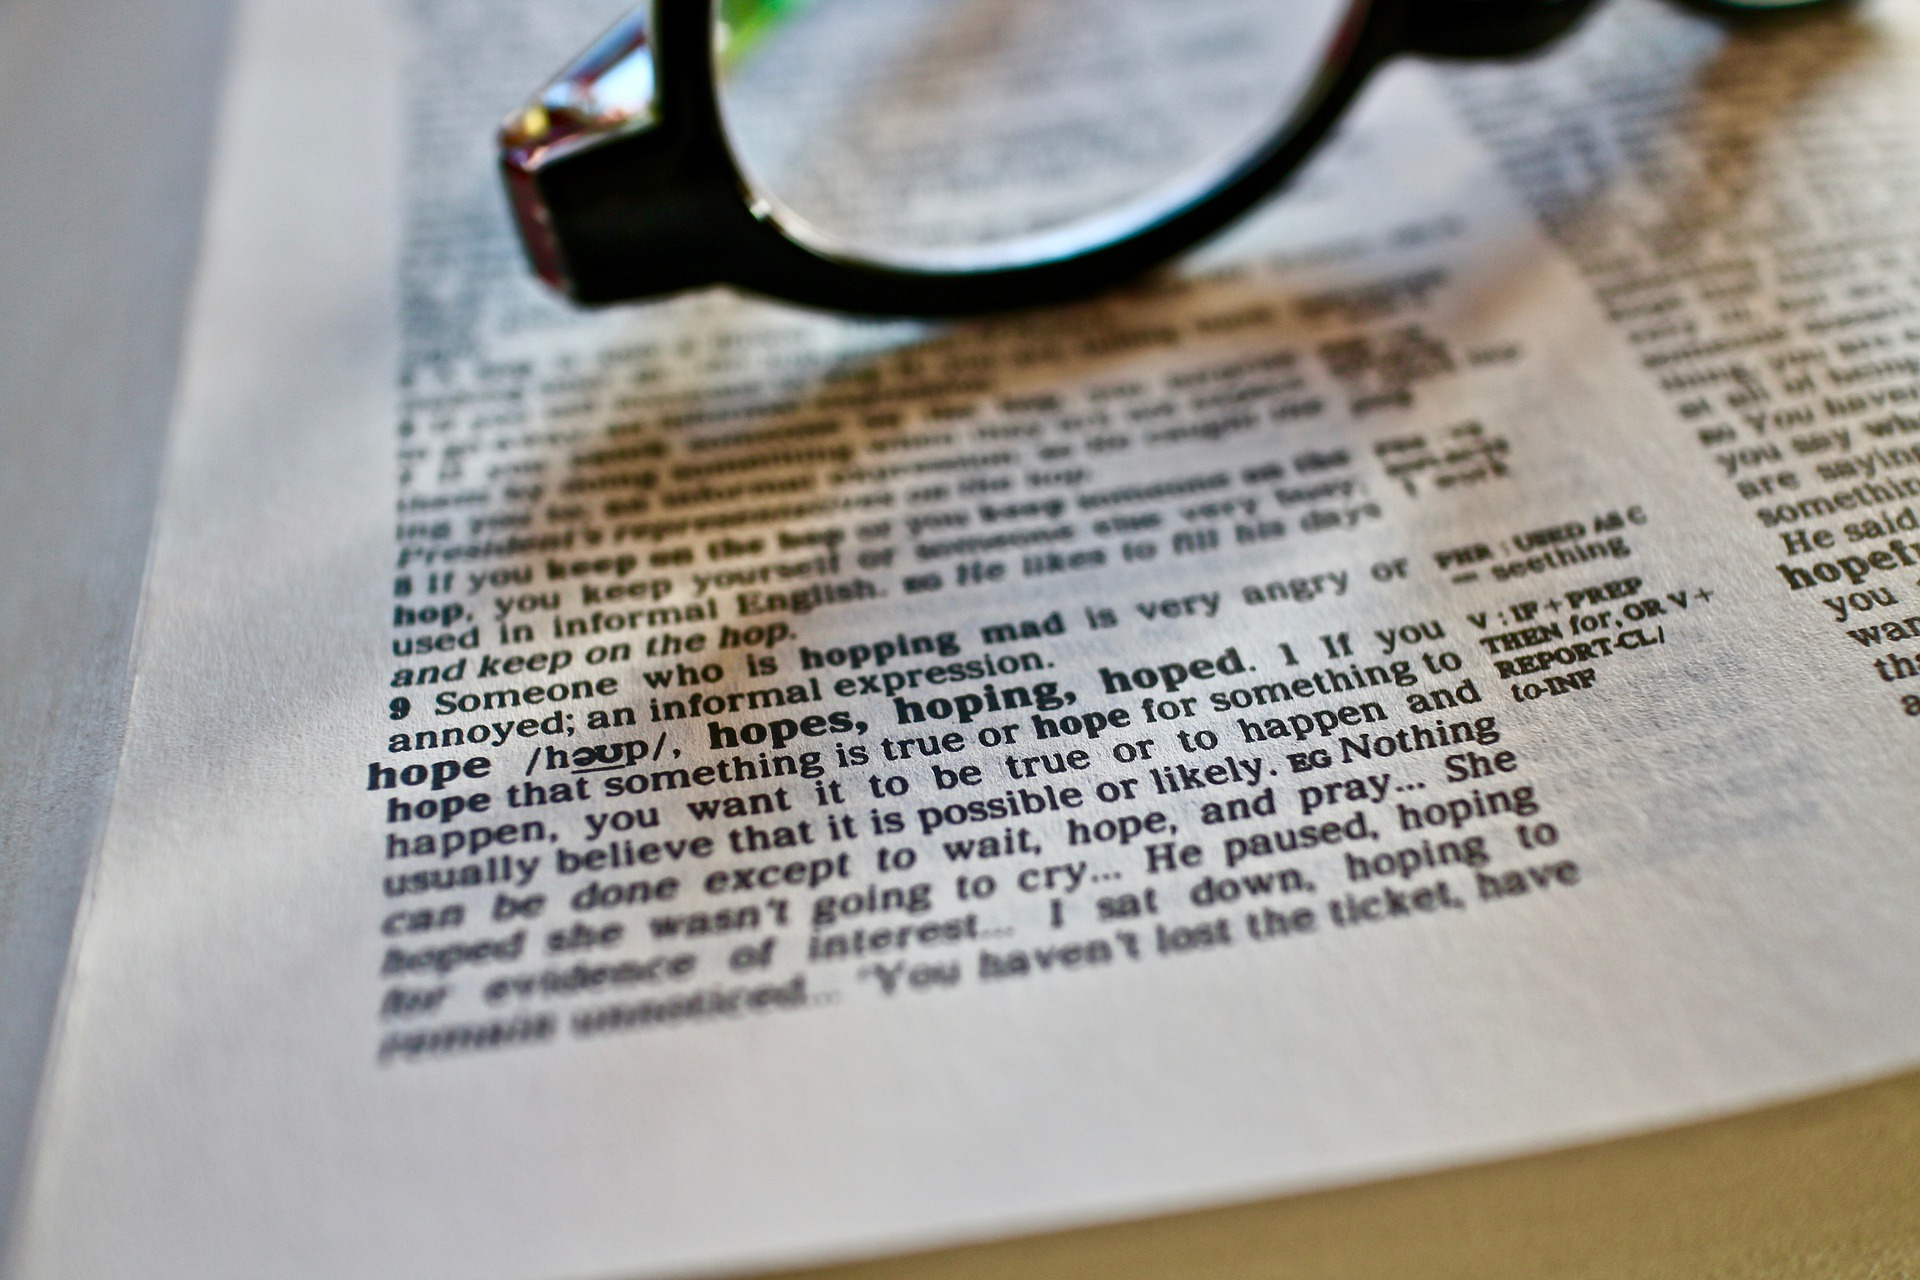 in the color photo you can see an English newspaper and above it a pair of black-rimmed glasses